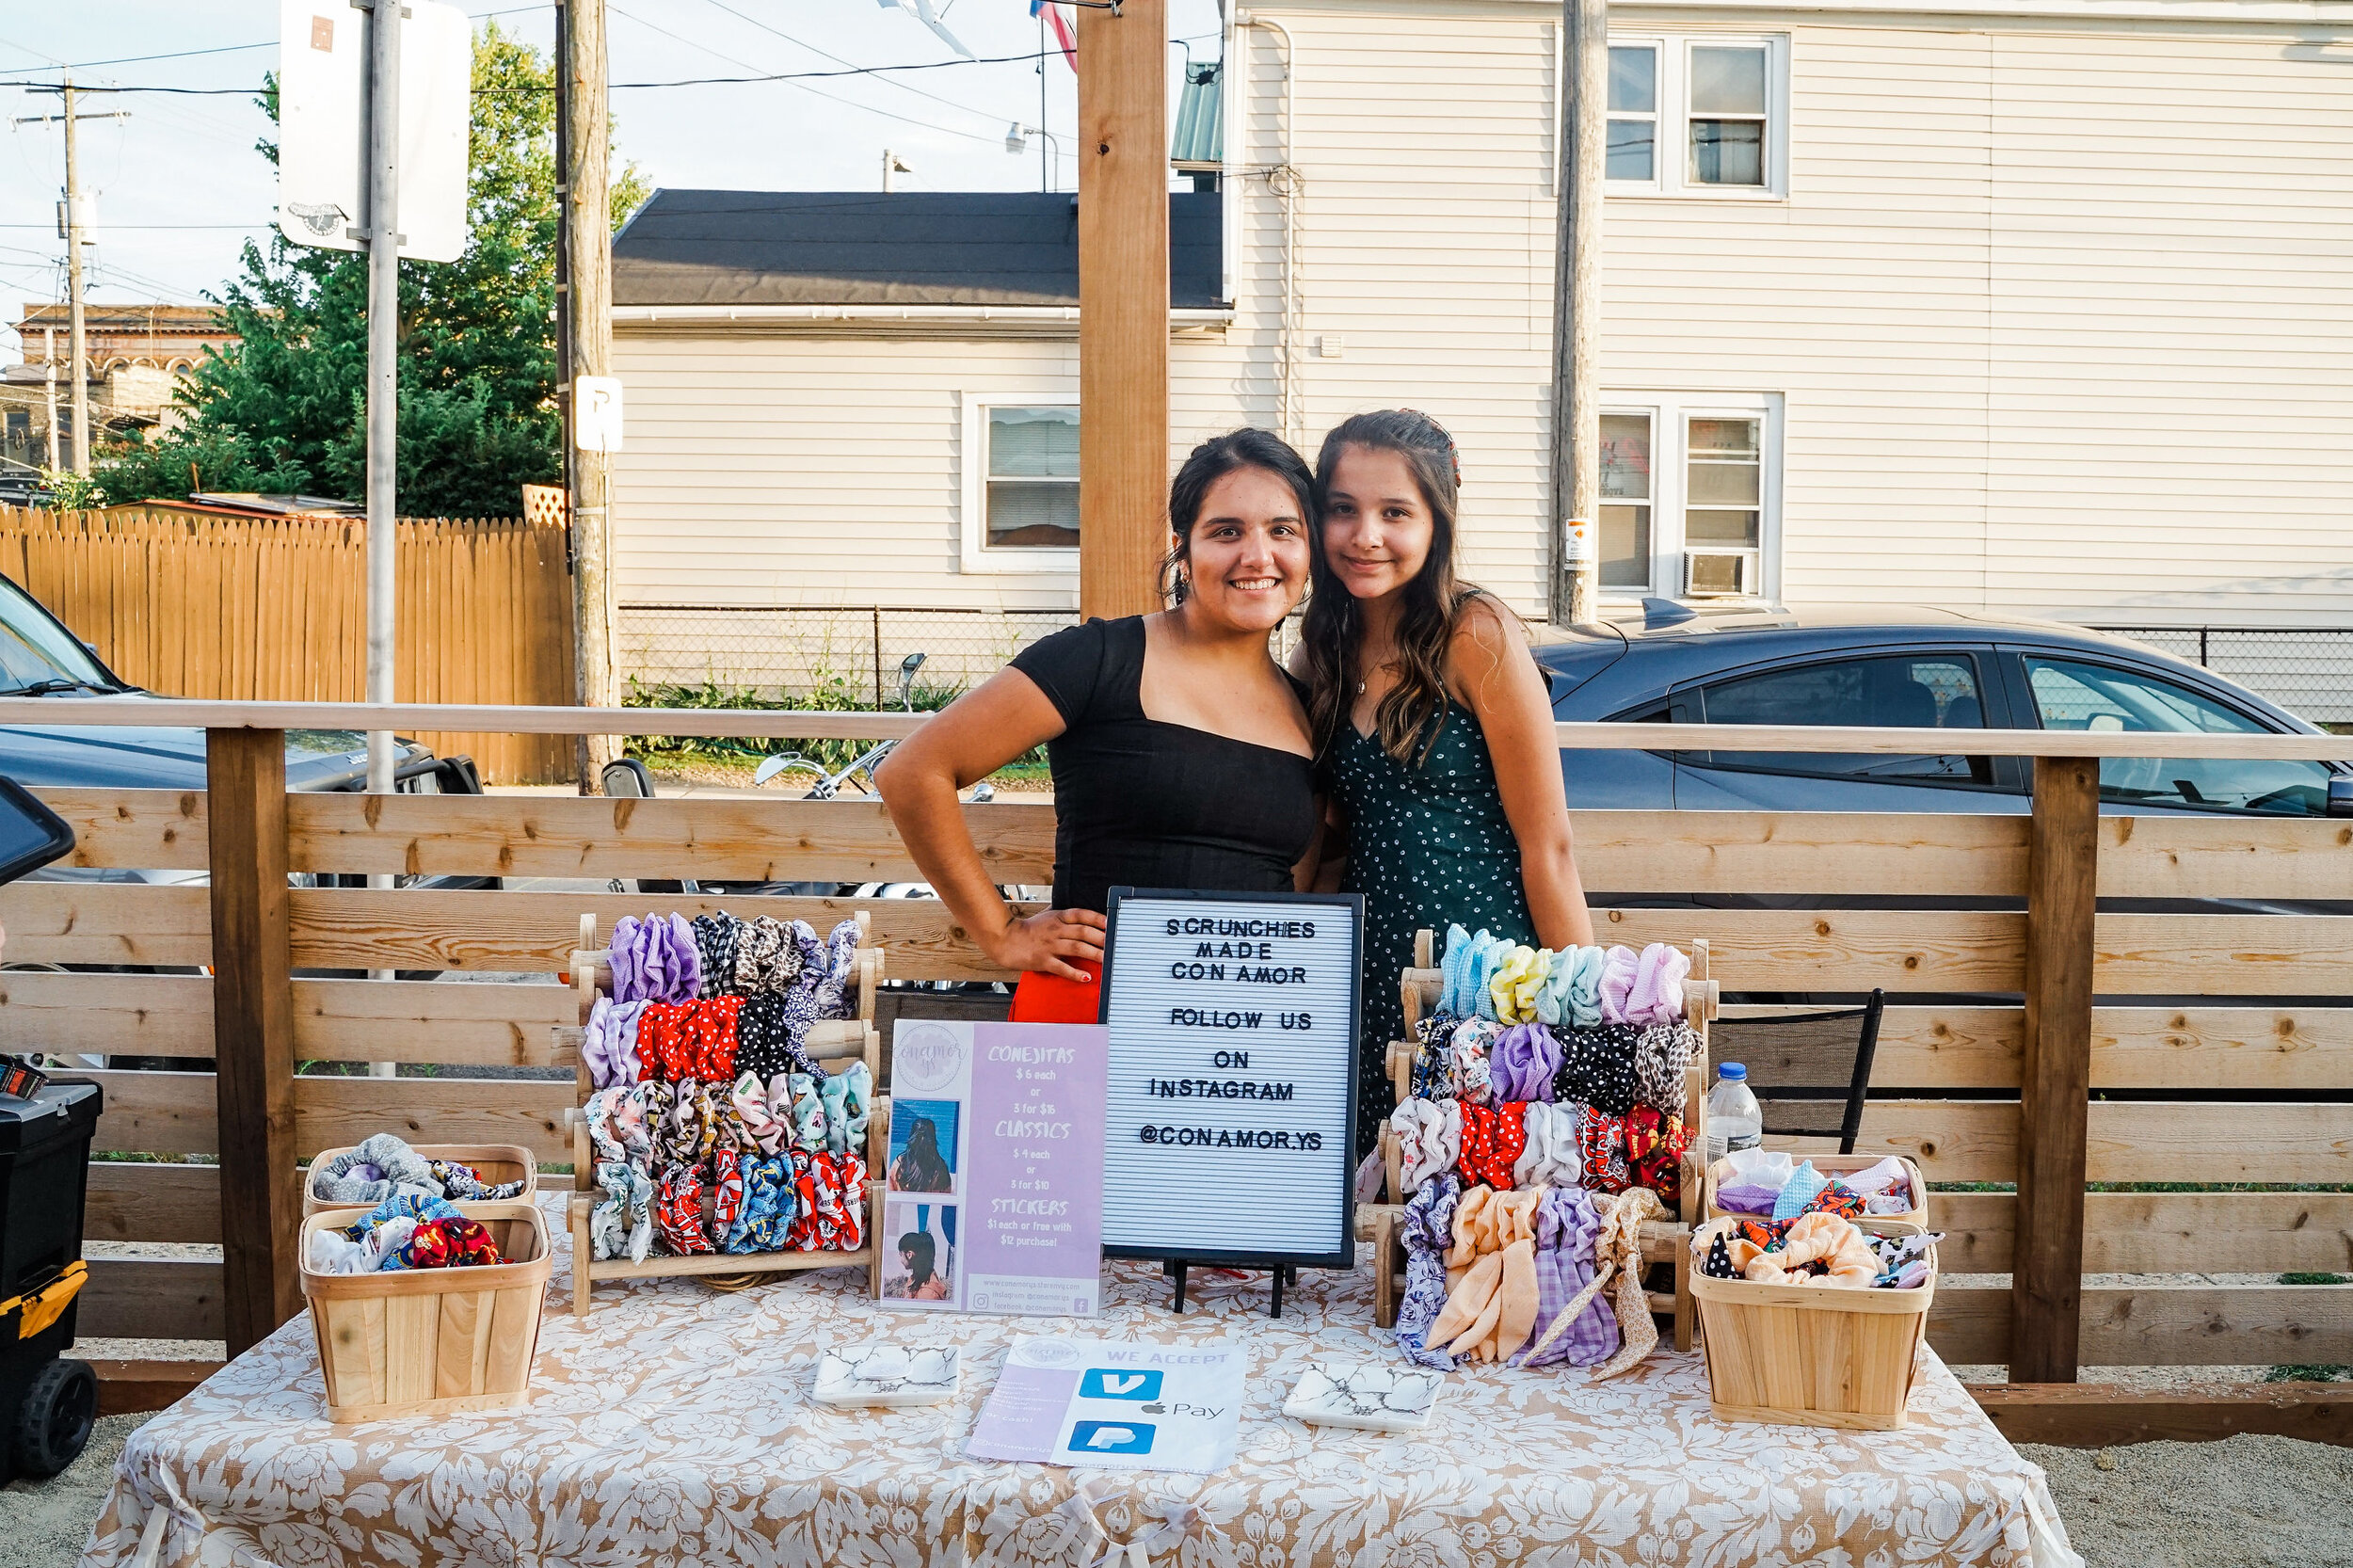 Sister vendors from Con Amor, Y.S. at Bota Gala Night Market. Photo by Charlie and Taylor Photography